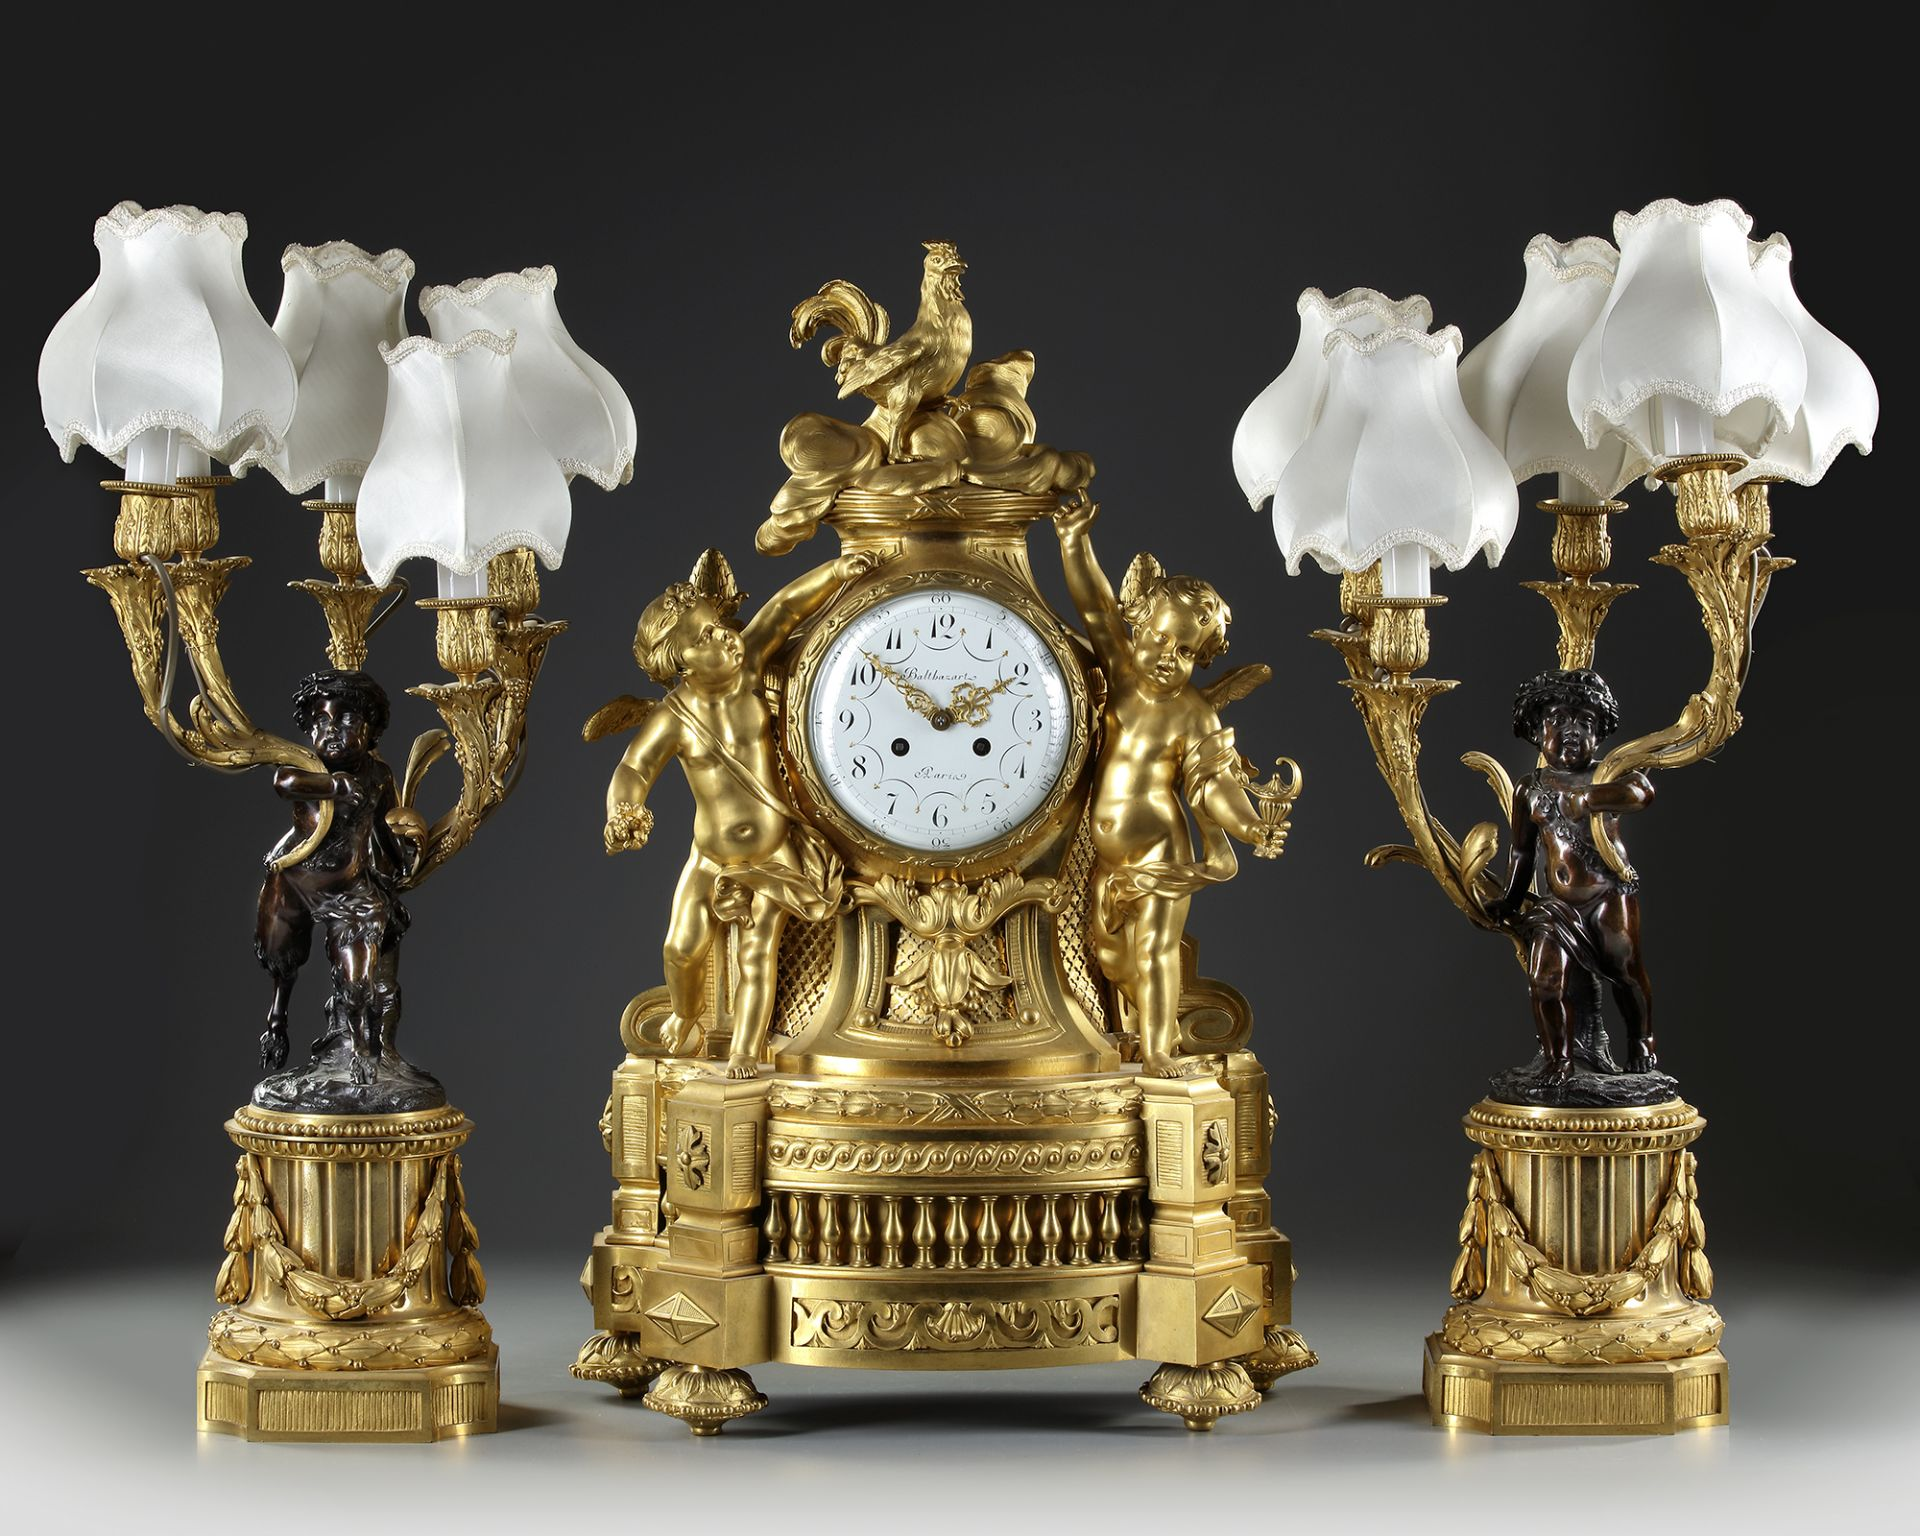 AN IMPORTANT GILT BRONZE CLOCK SET, FRANCE, 19TH CENTURY